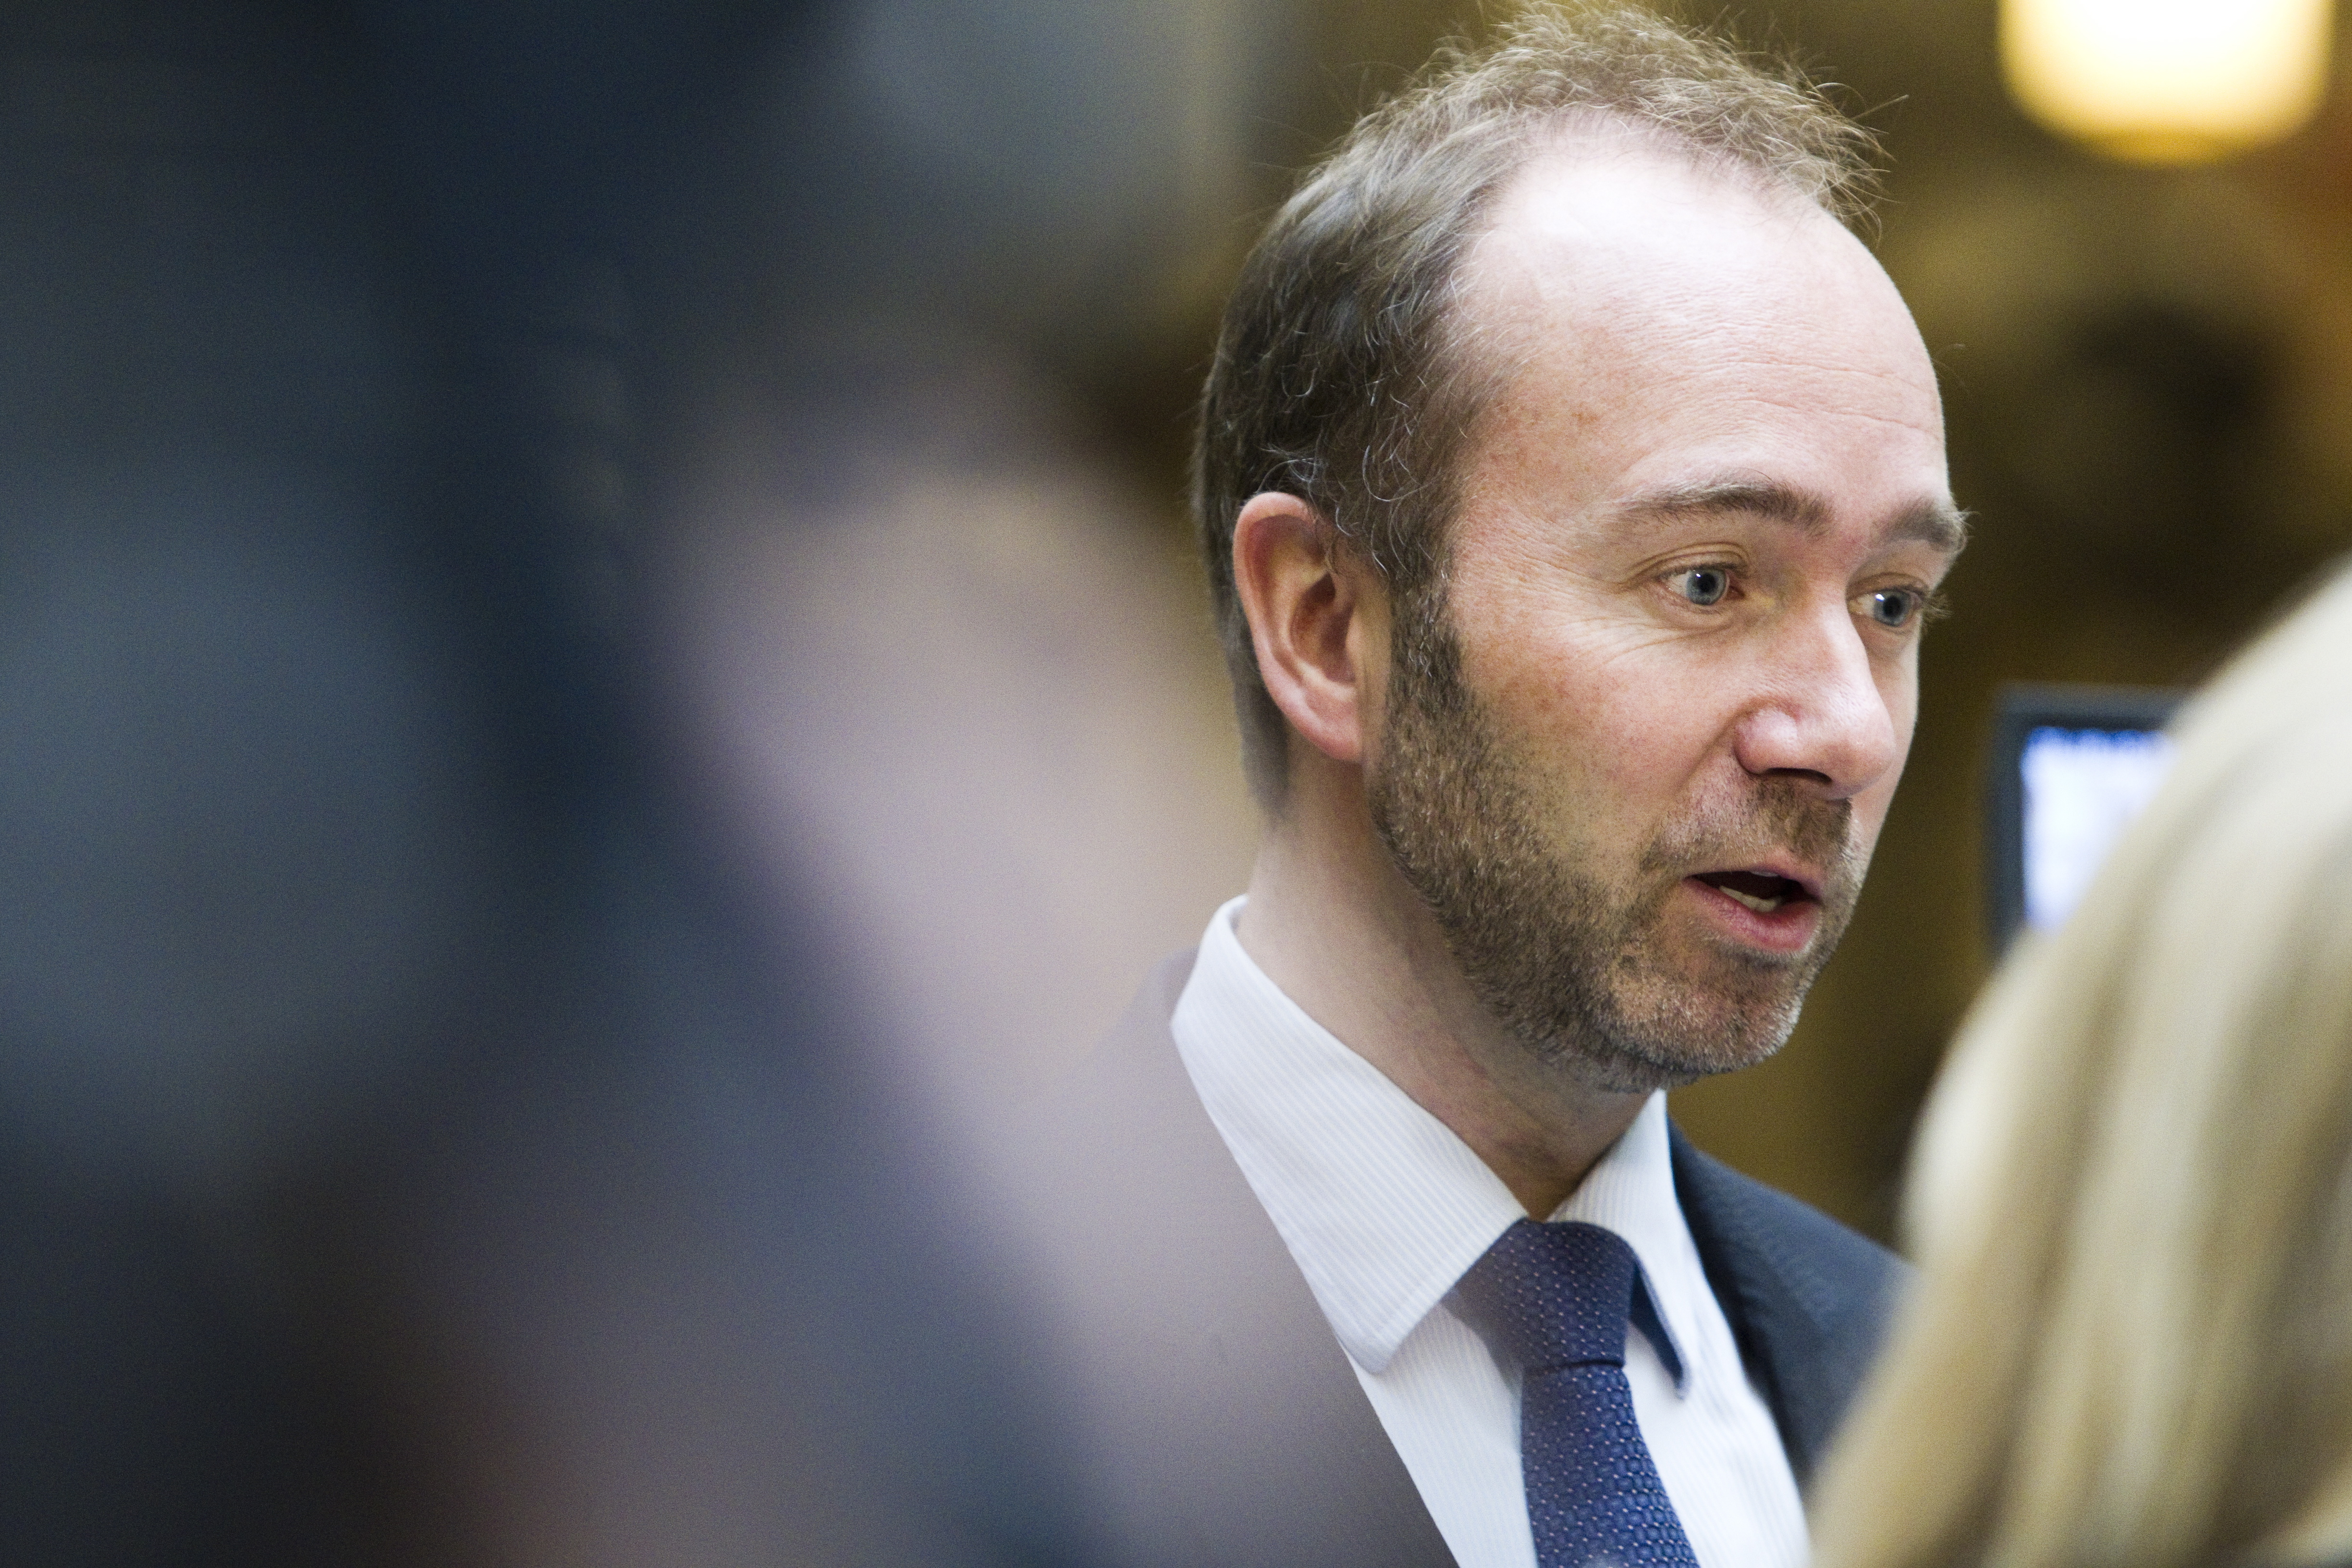 Norway's Trade Minister Trond Giske is seen in Oslo, Norway.